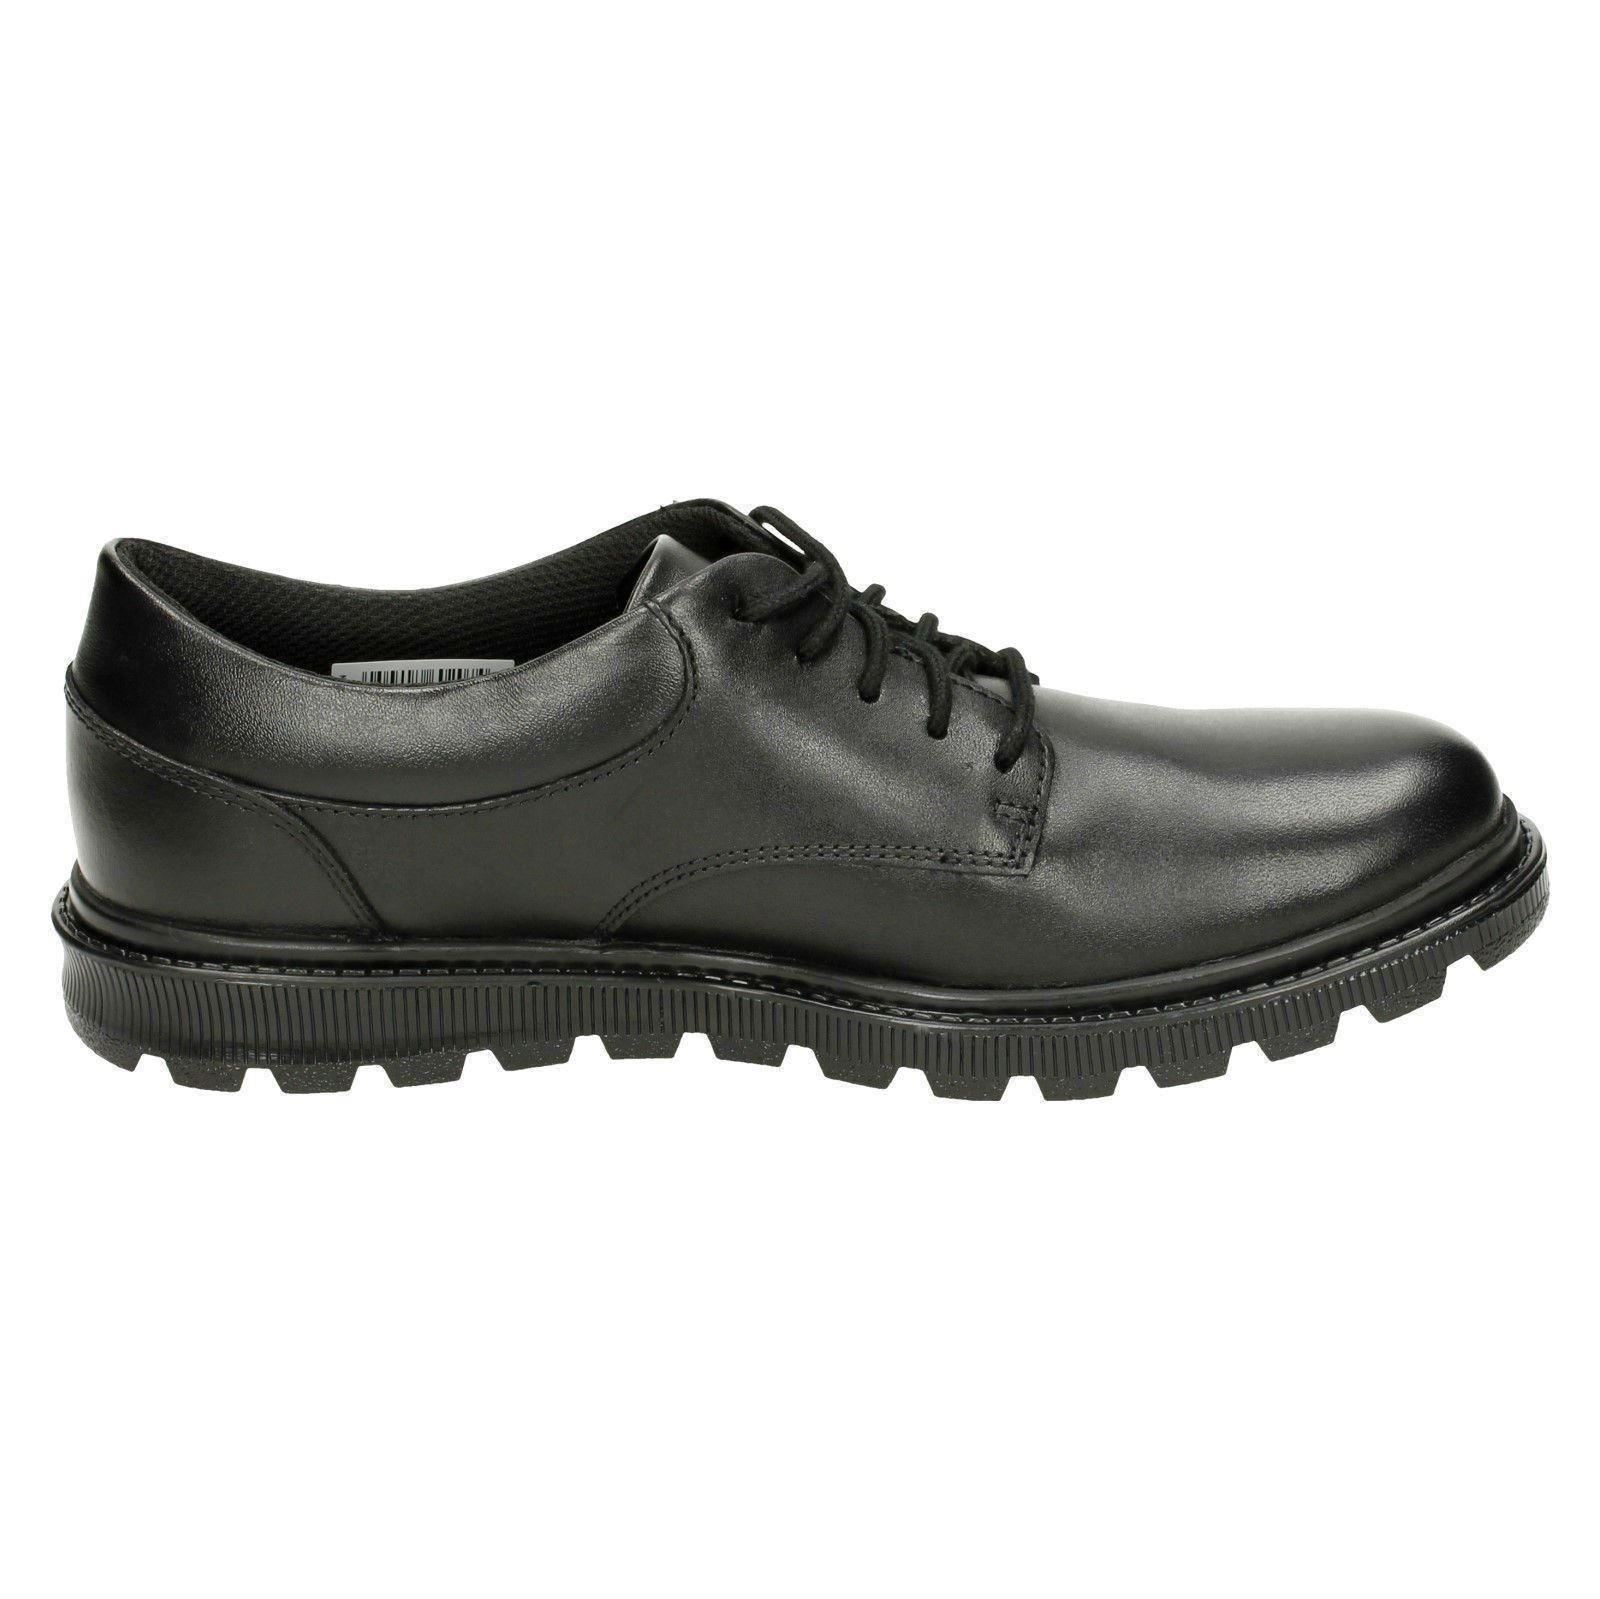 Boys Bootleg By Clarks School Shoes /'Mayes Trek/'